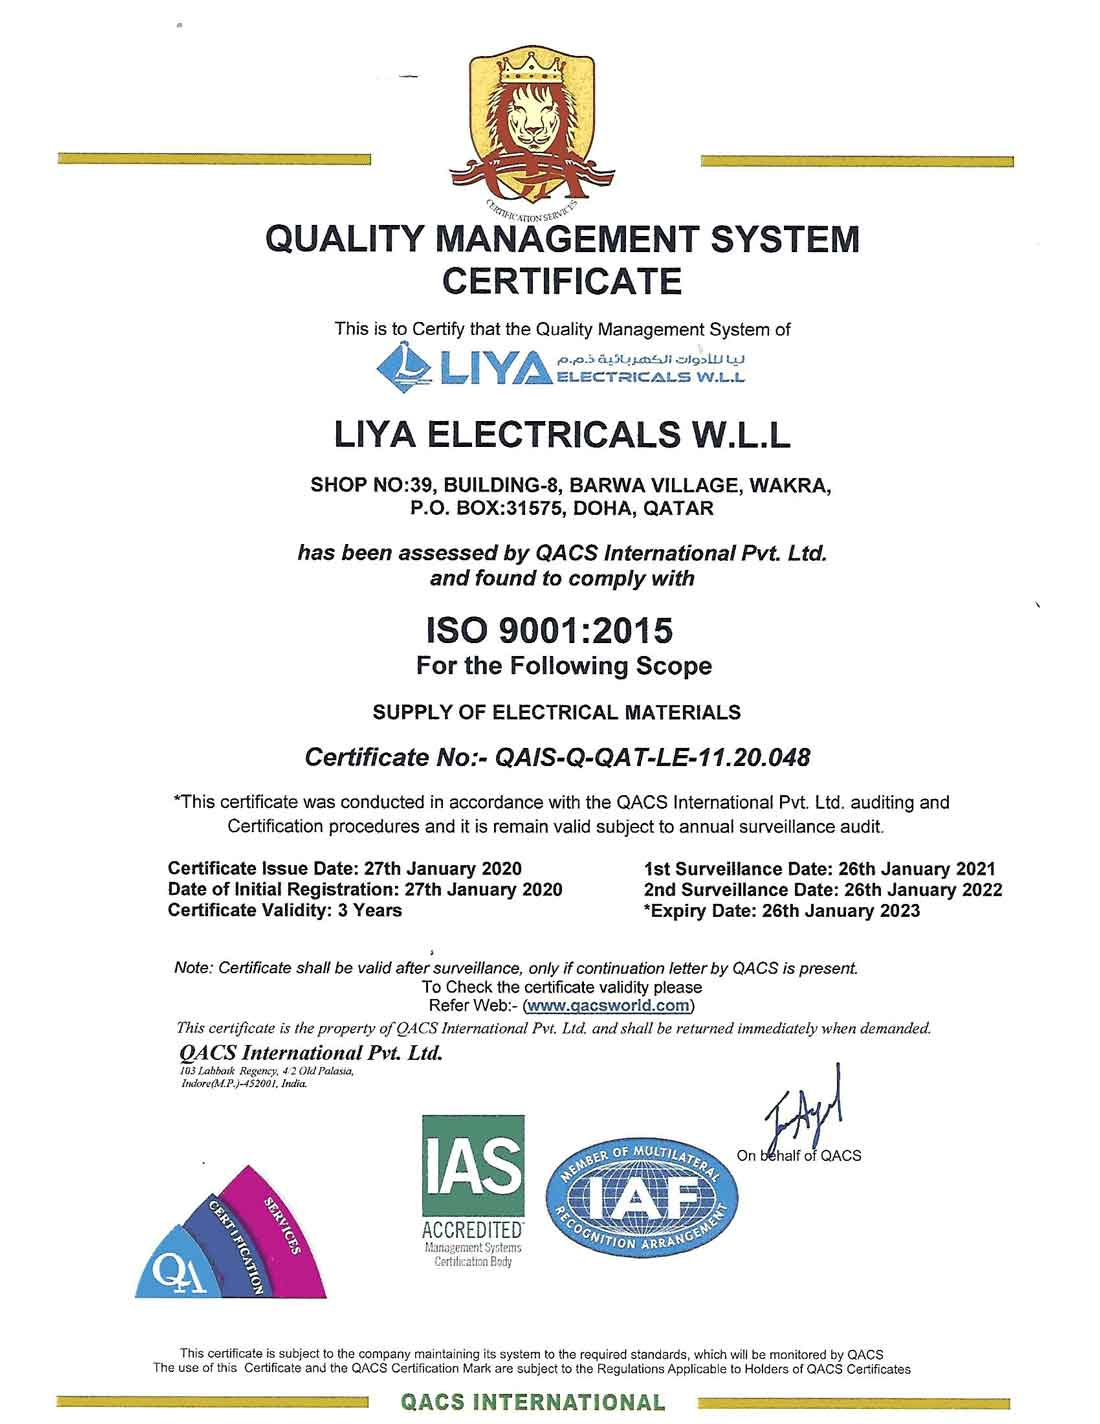 Liya Electricals Iso Certificate